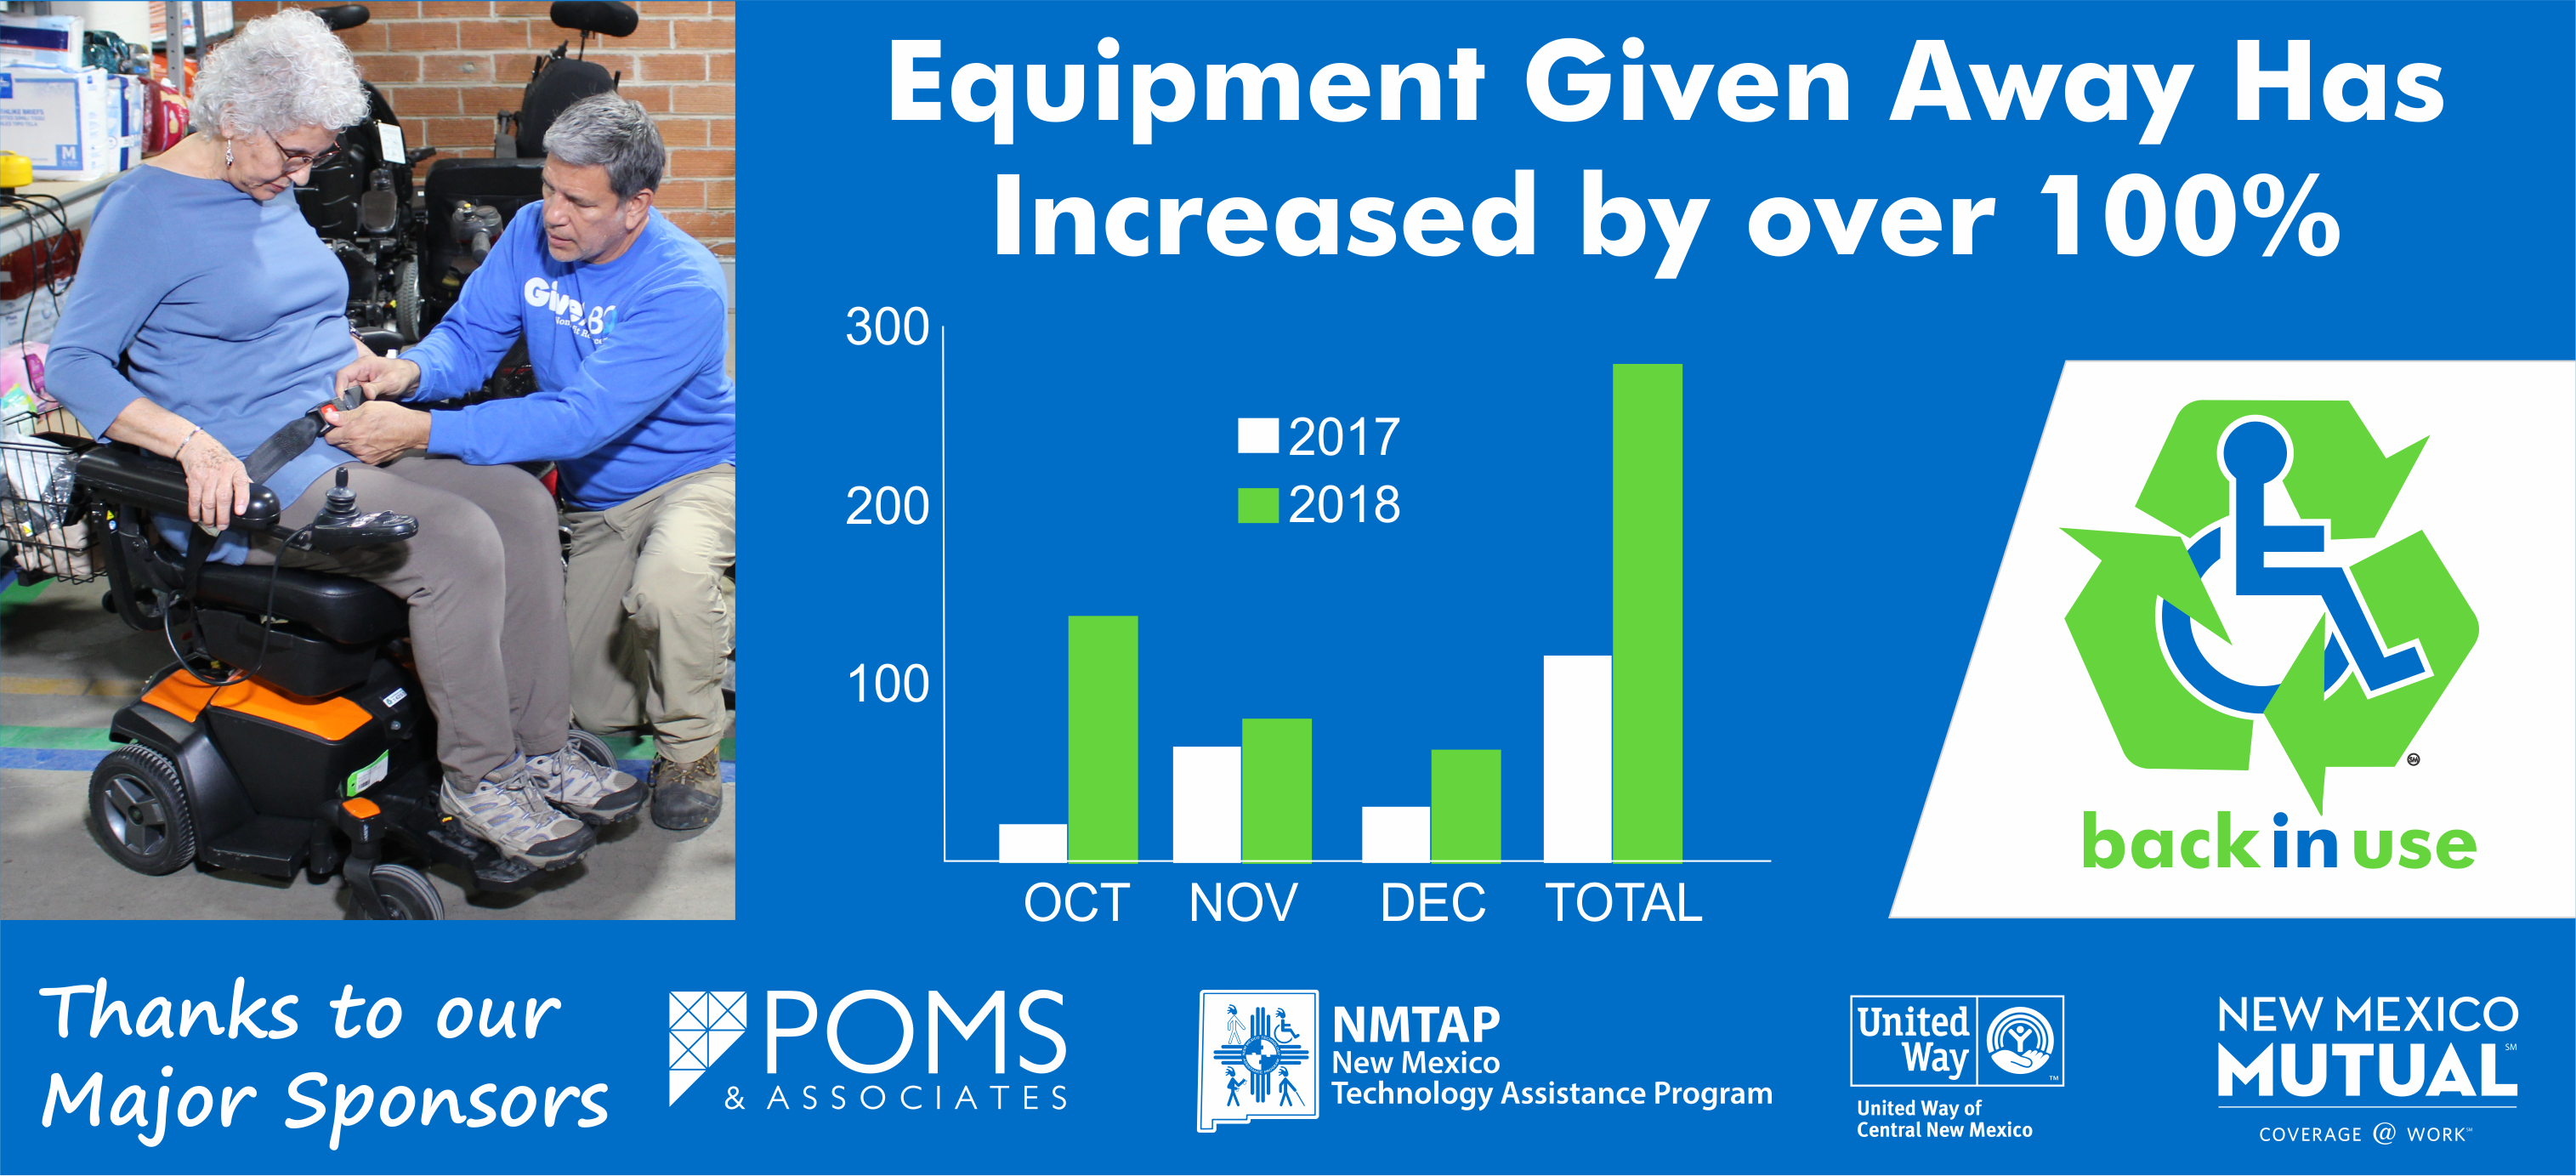 "A senior woman tries out a power chair assisted by Jerome from GiveABQ.   Text reads: ""Equipment Given Away Has Increased by over 100%.""  There is a bar graph below that notes the differences in donations between 2017 and 2018. October, November, and December have increases. There is a large increase in the total.   Thanks to our major sponsors: Poms and Associates, New Mexico Technology Assistance Program, United Way, and New Mexico Mutual."